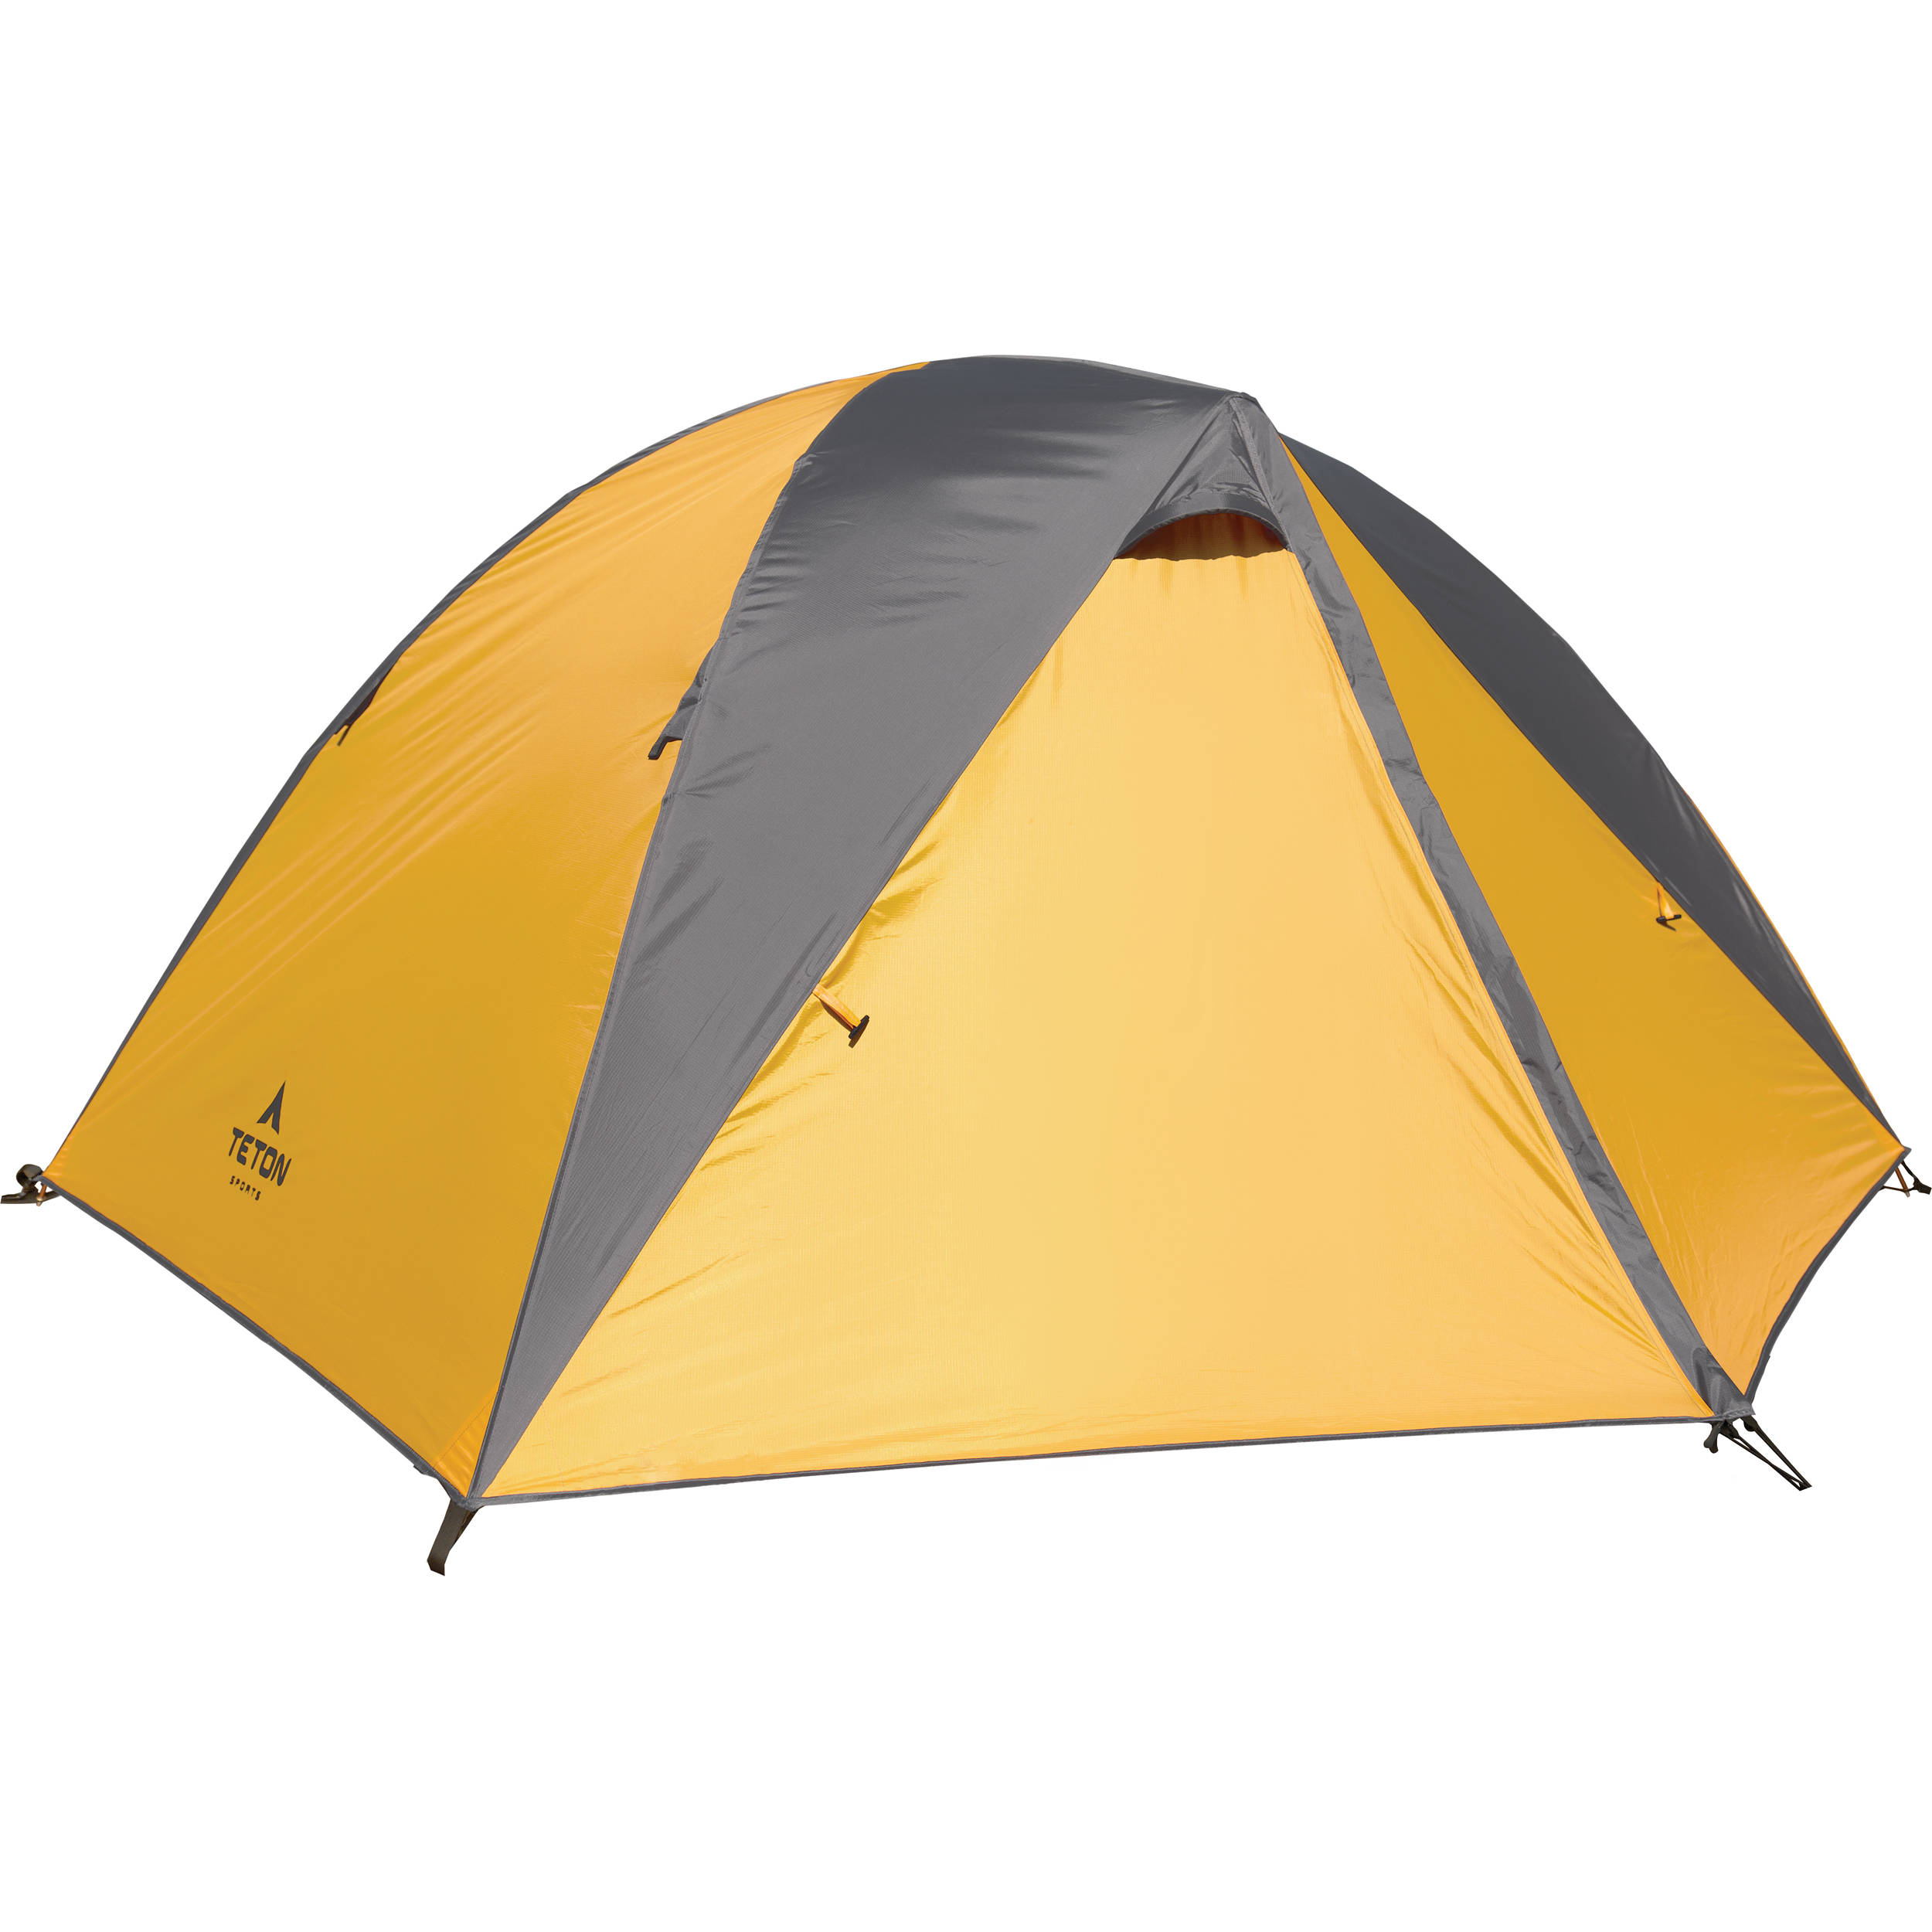 TETON Sports Mountain Ultra 2 Backpacking Tent (Orange/Gray)  sc 1 st  Bu0026H : 2 person hiking tent - memphite.com